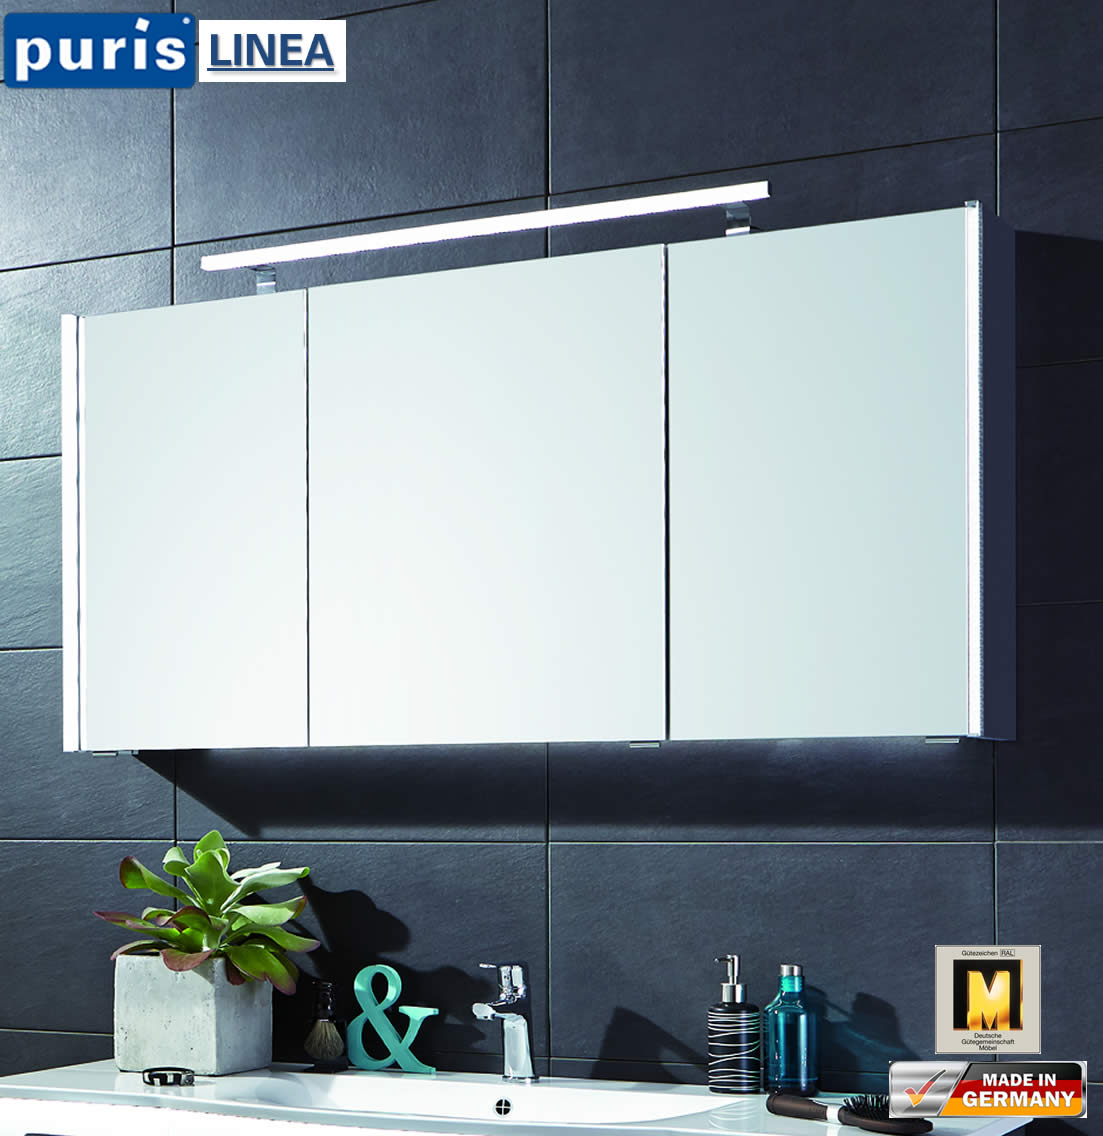 puris linea led spiegelschrank 130 cm s2a431379 impuls home. Black Bedroom Furniture Sets. Home Design Ideas